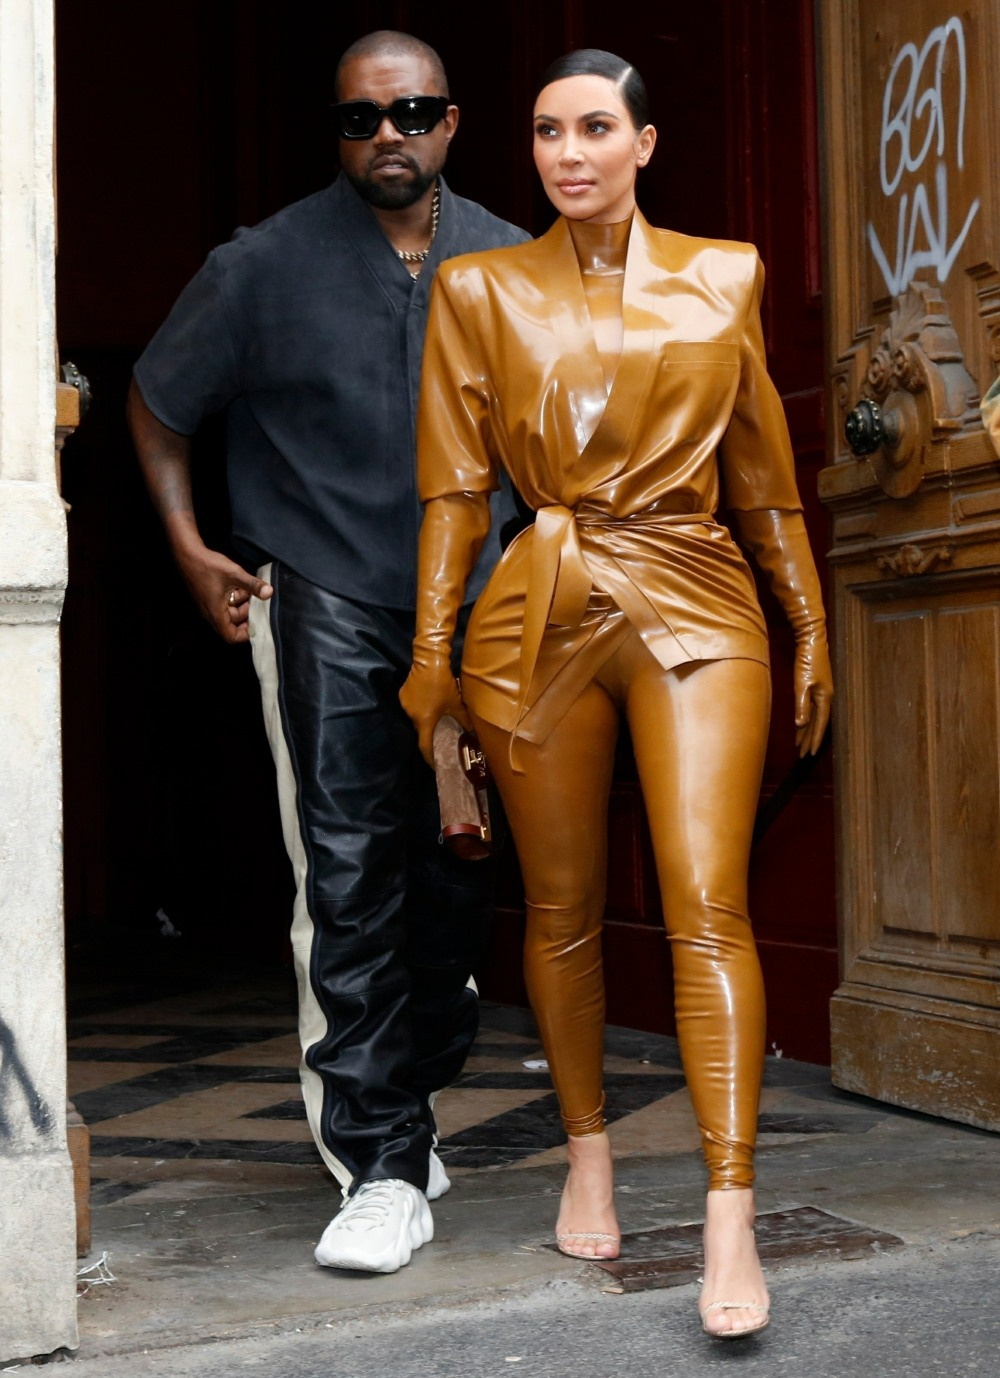 Kanye West, Kim Kardashian, their daughter North West, and family attend Kanye's 'Sunday Service' in Paris